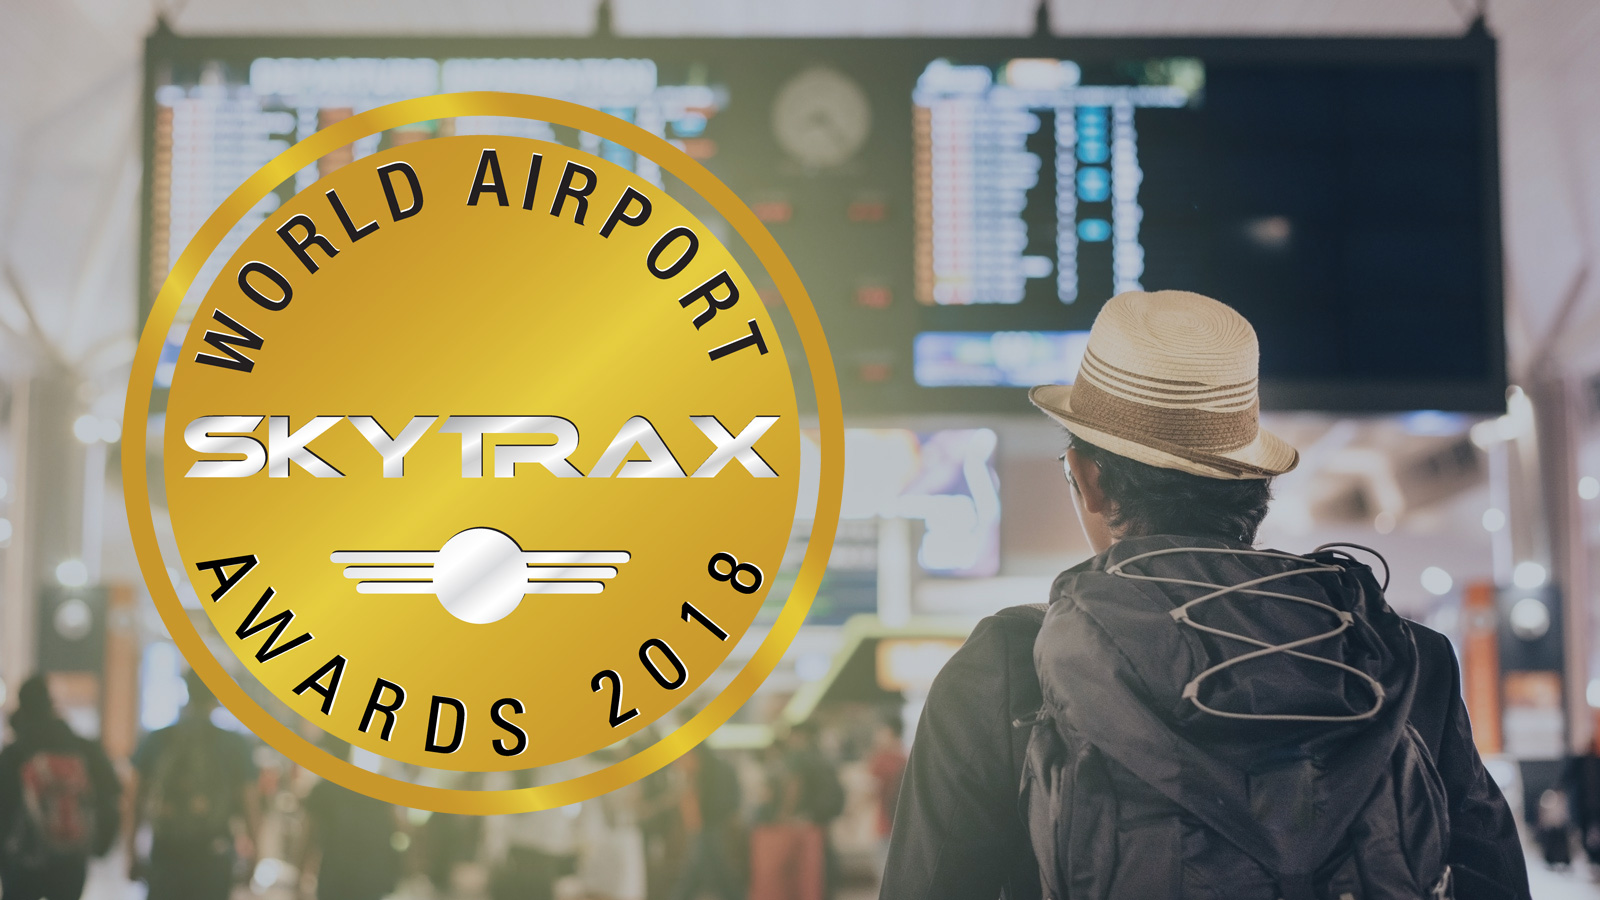 2018 world airport awards announced